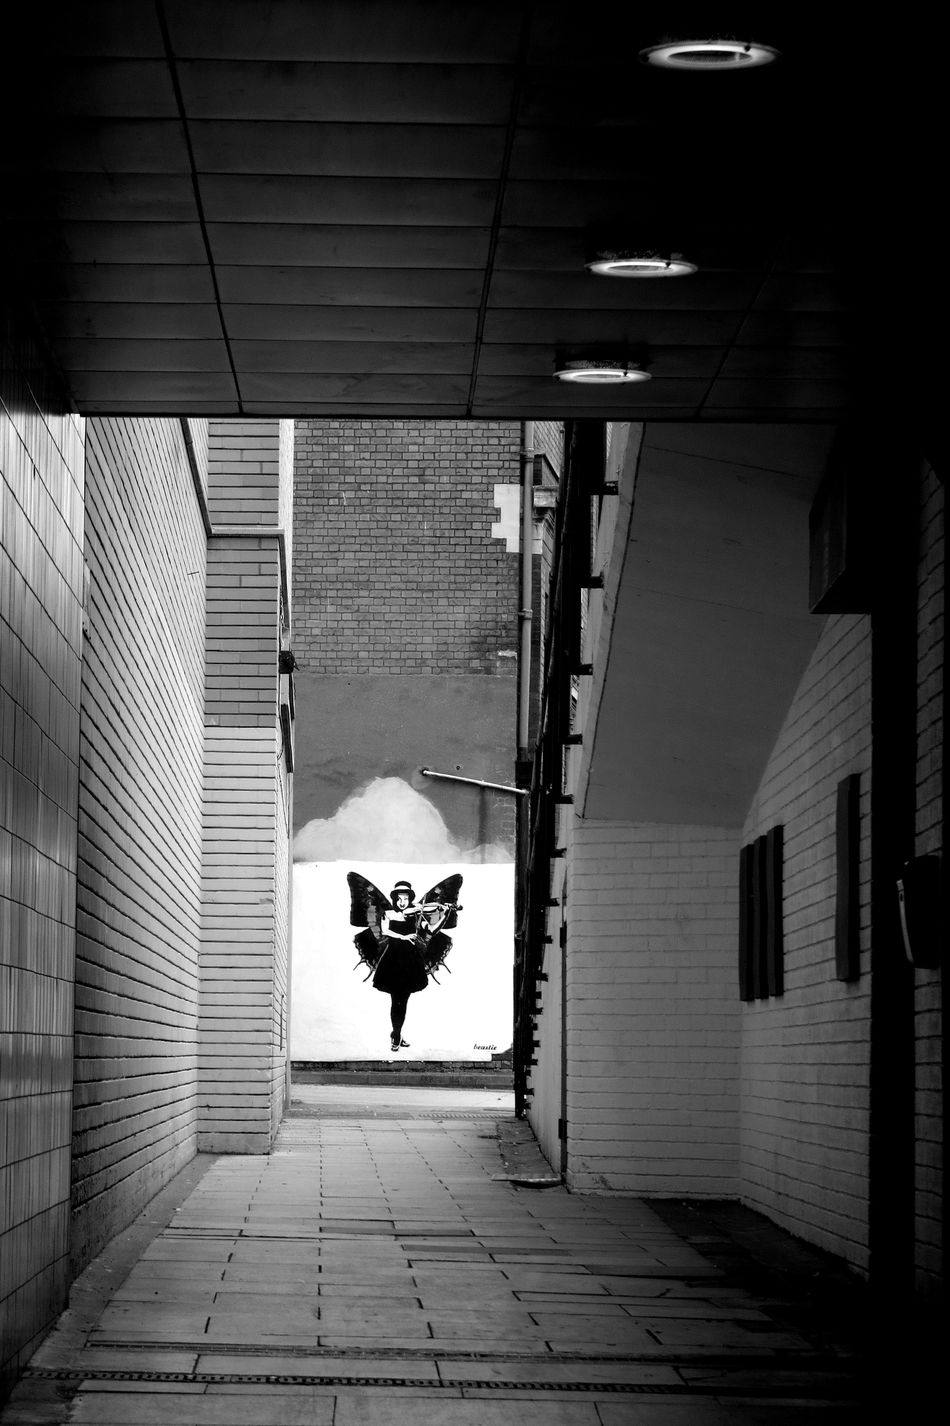 Alley Architecture Beauty In Ordinary Things Black And White Black And White Photography Building Exterior Built Structure Day Fairy Fantasy Art Gloucester Graffiti Imagination Lady Light Abstracts  No People Outdoors Street Art Street Art/Graffiti Tunnel Way Out Wings